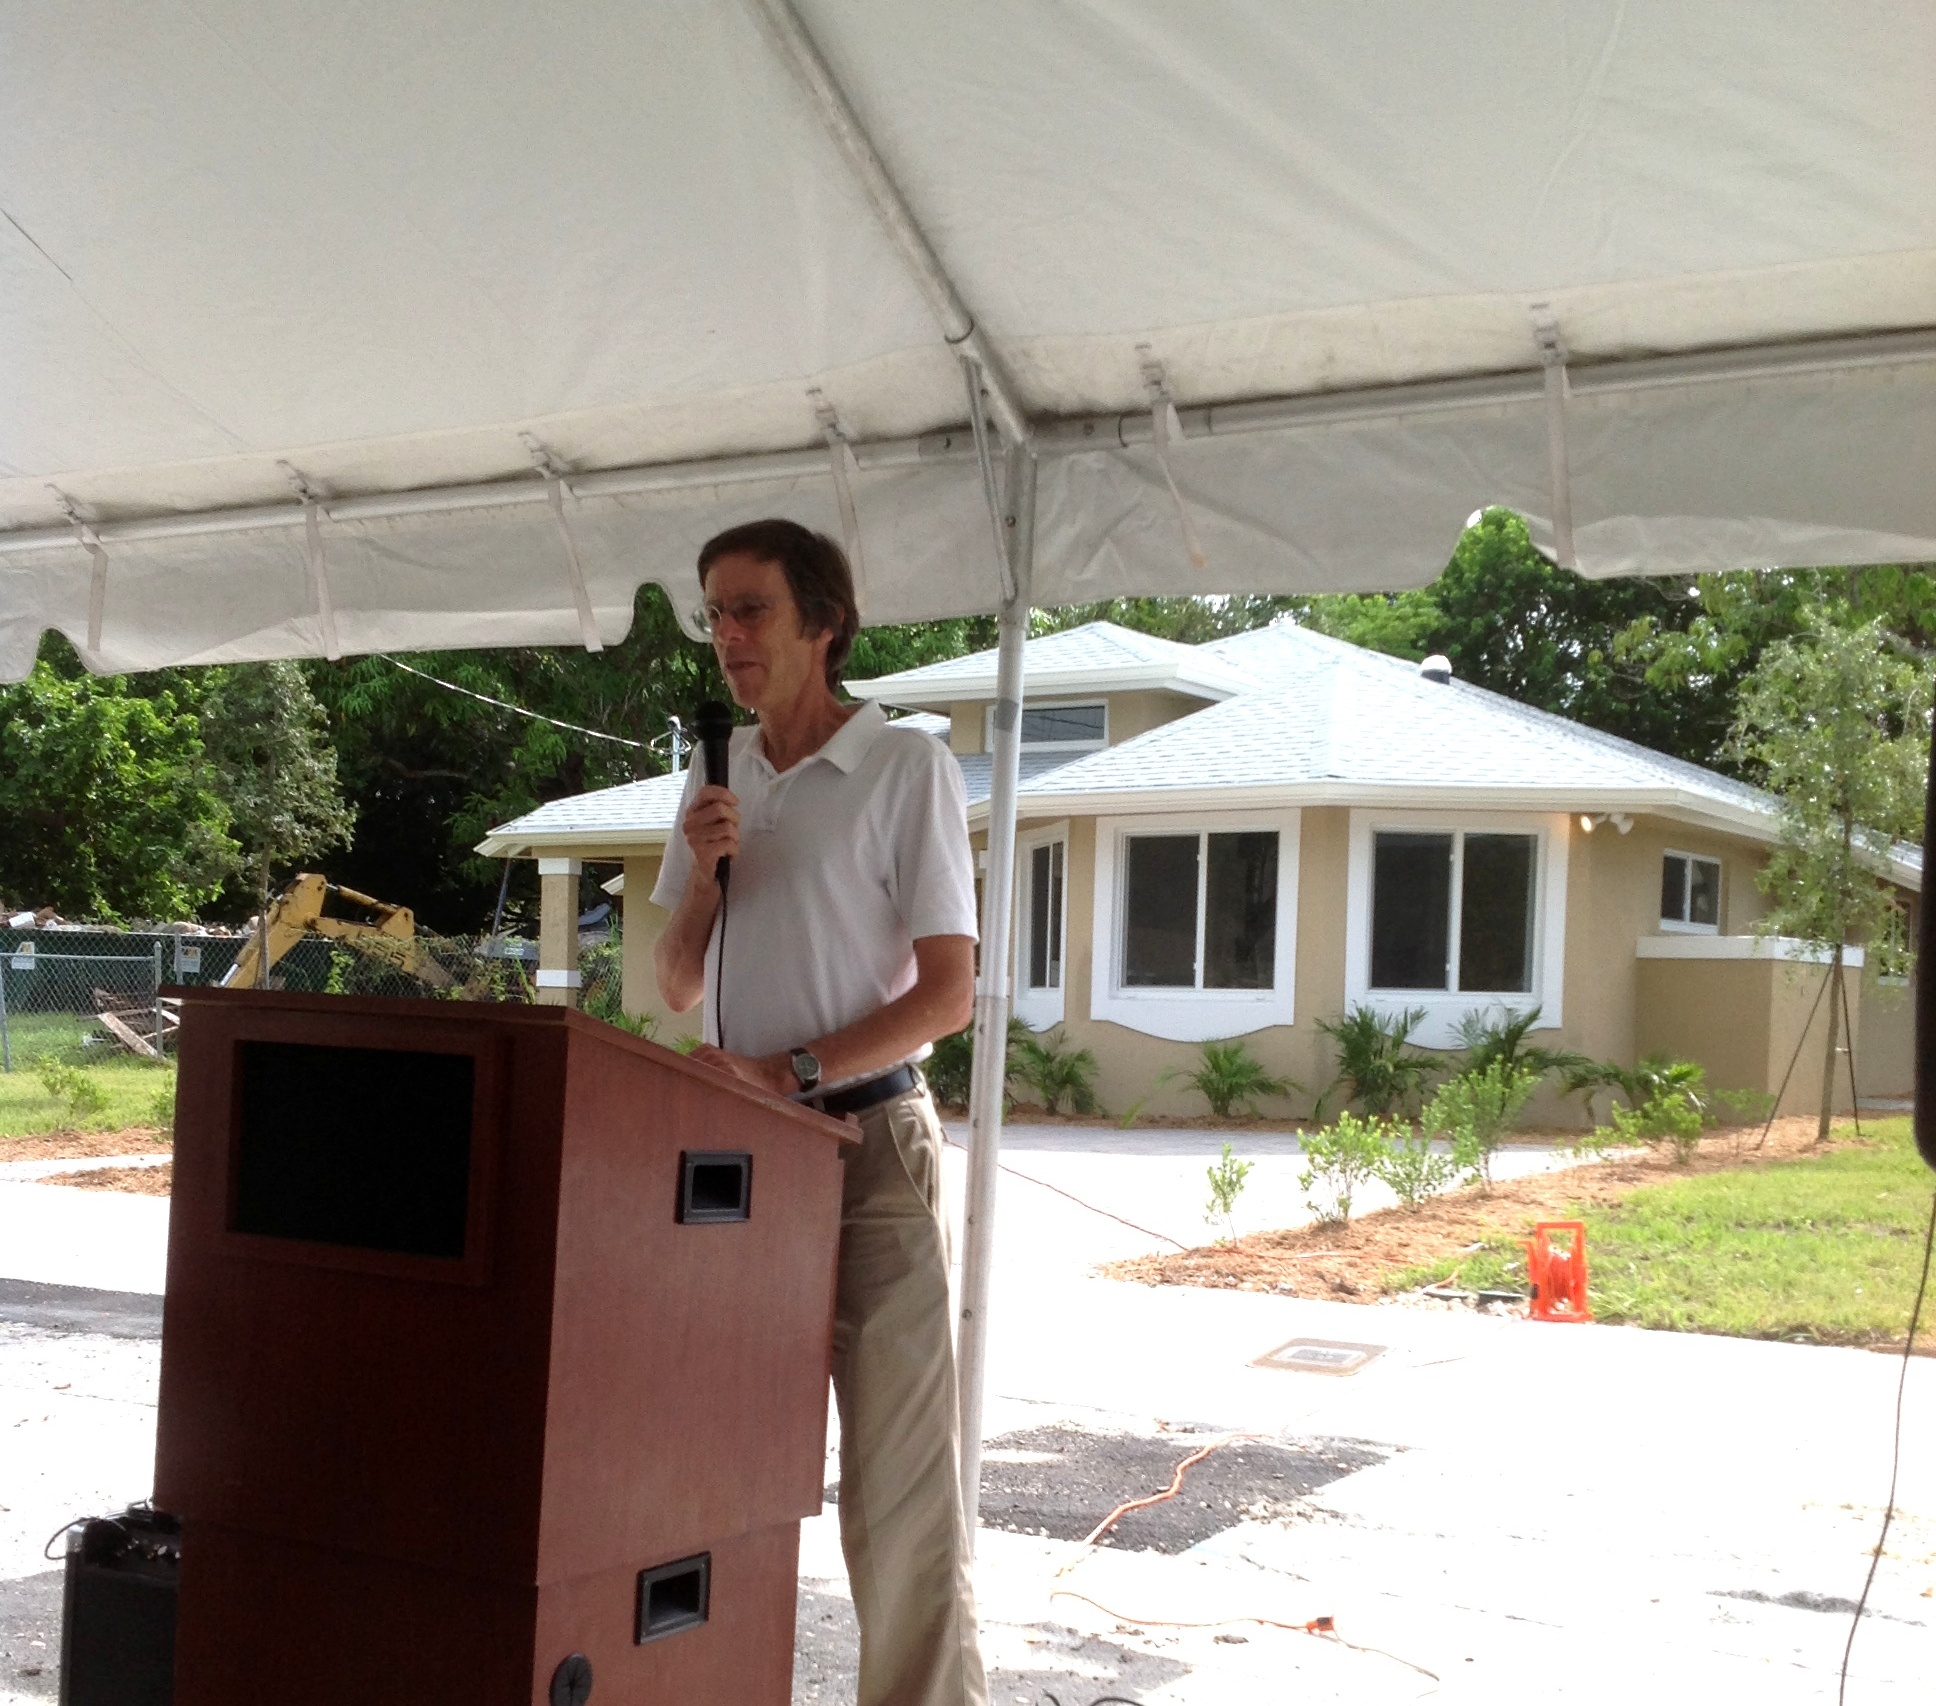 Mayor Speaking at the Ribbon Cutting